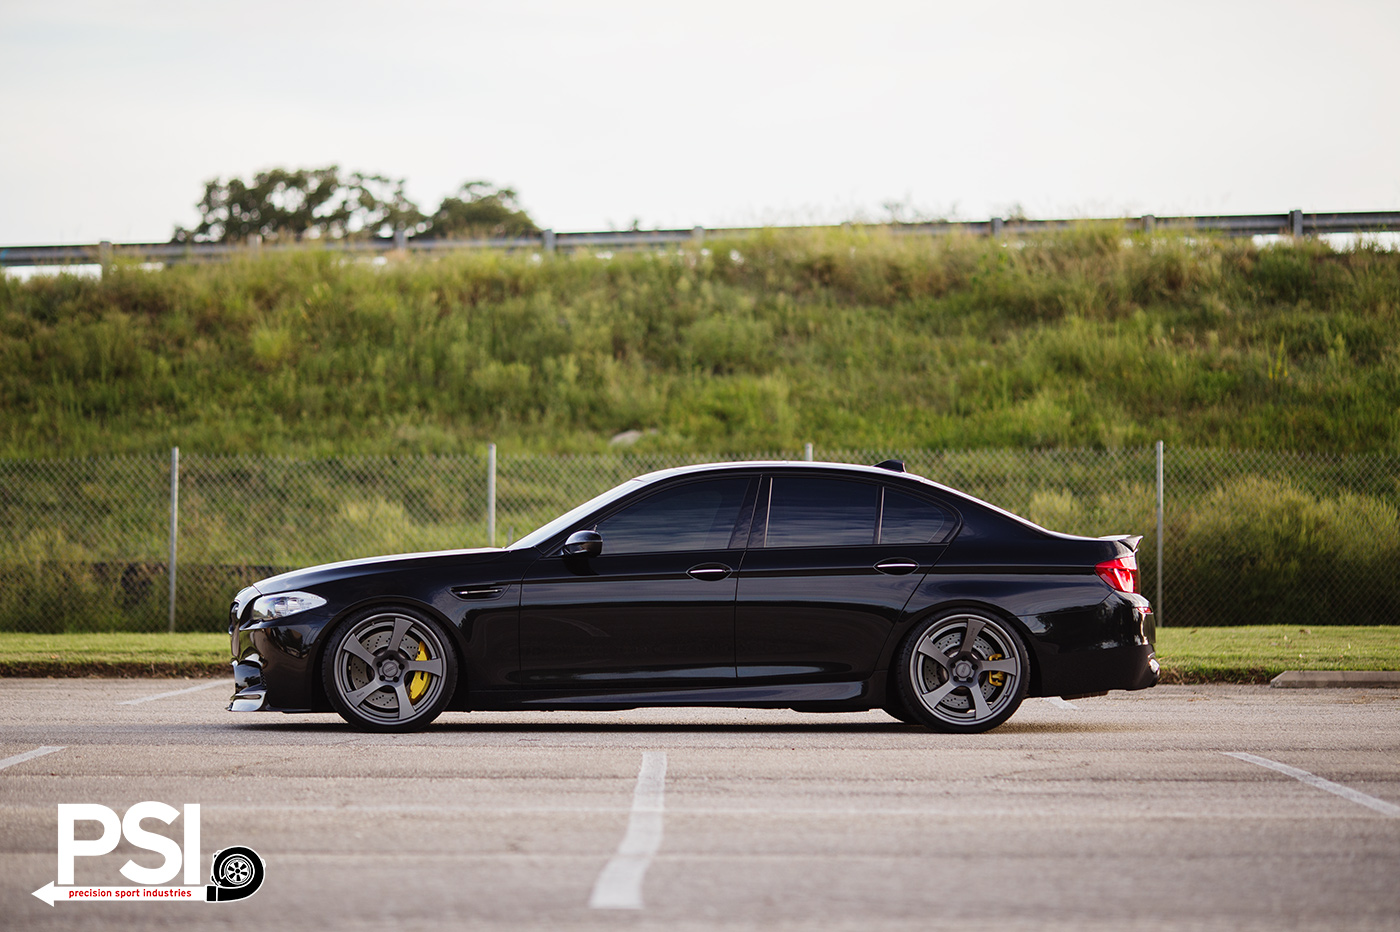 The Wake Of Magellan Bmw F10 M5 By Psi